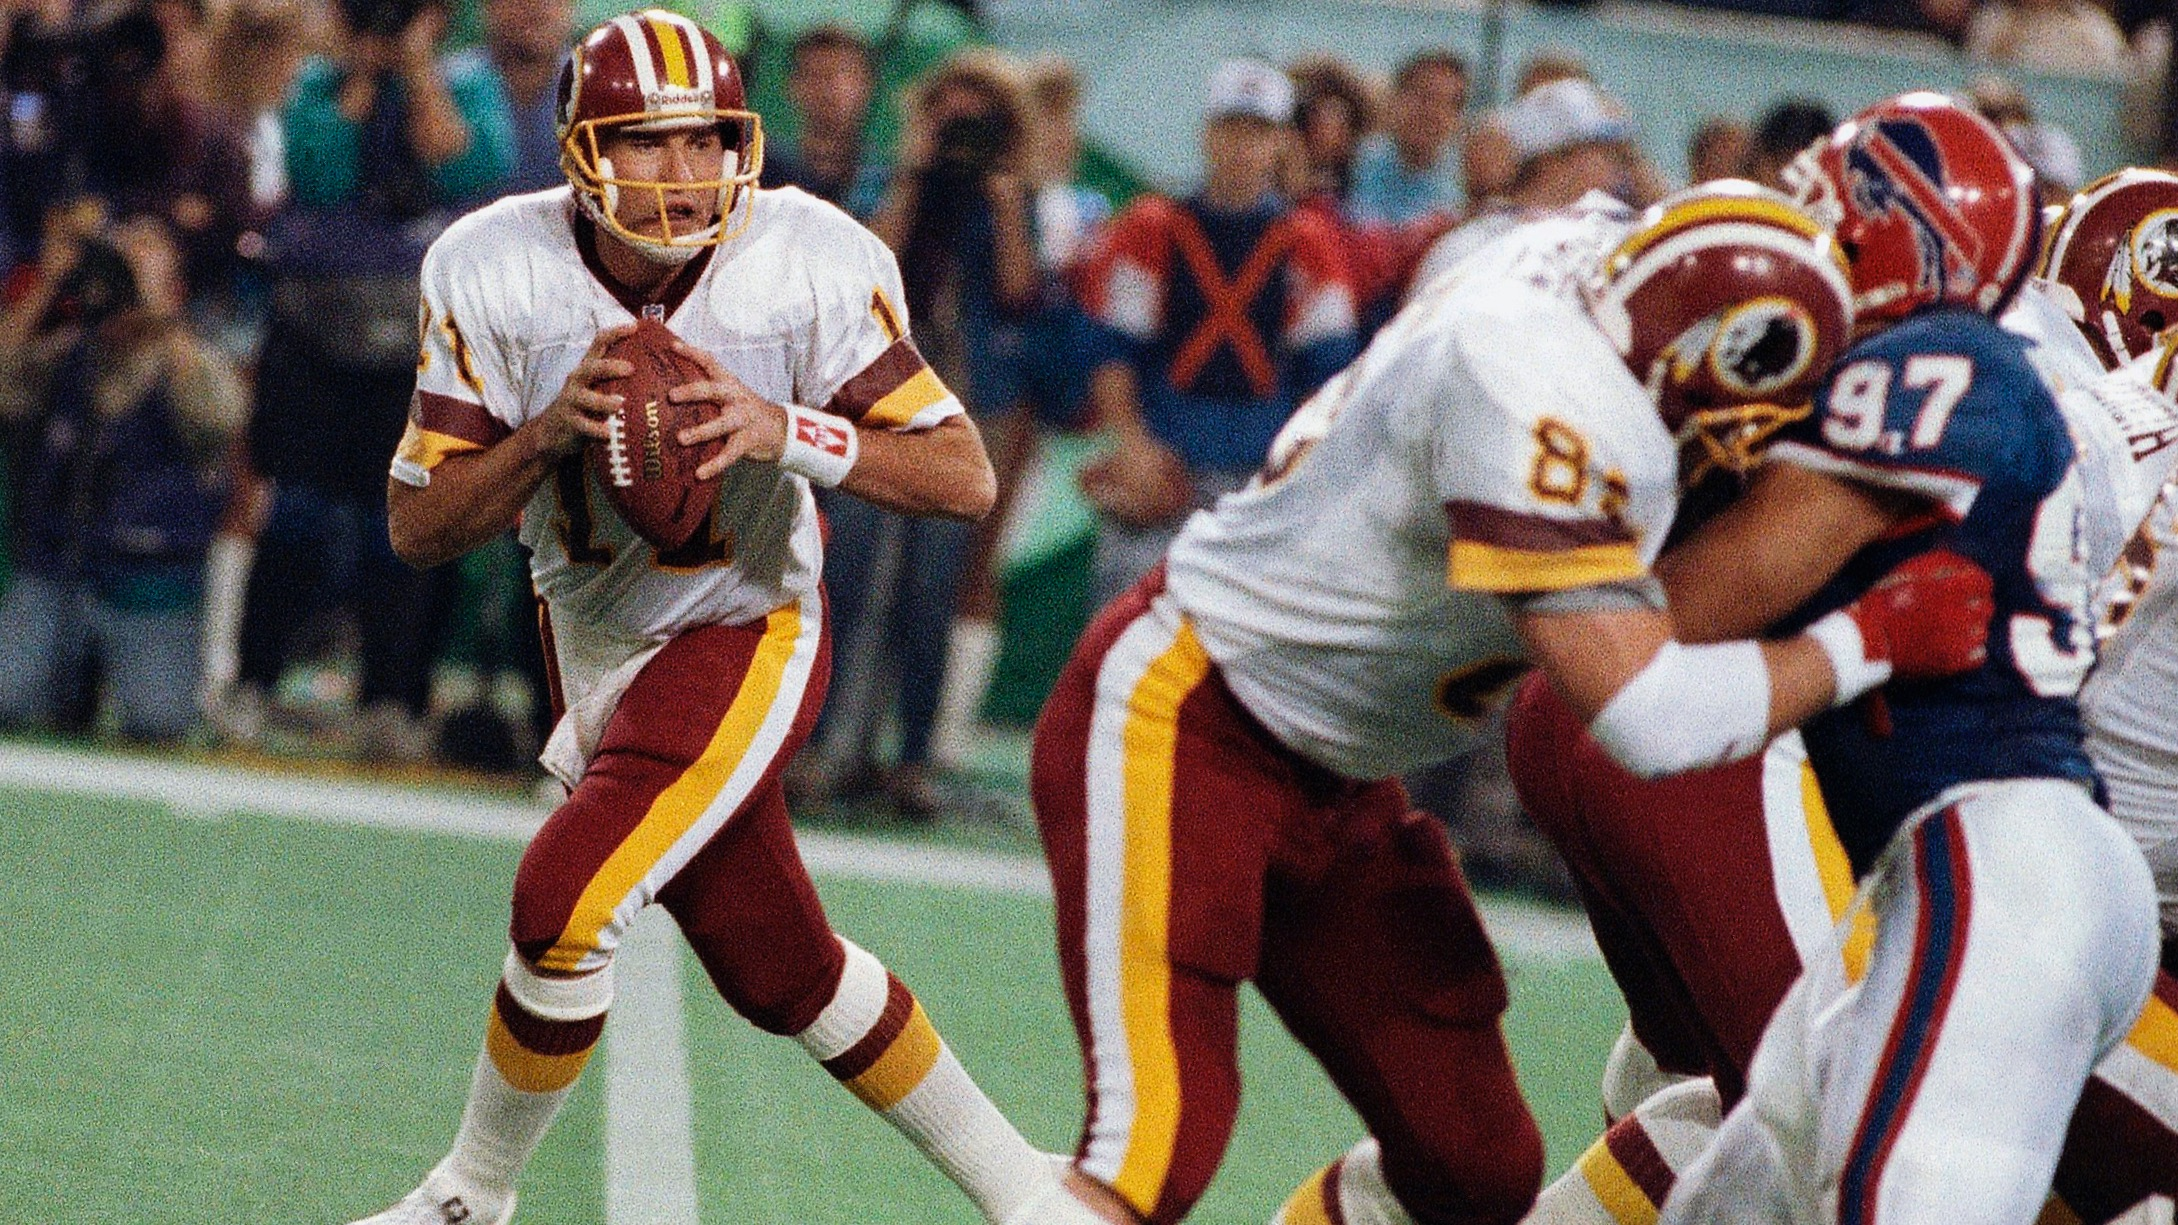 Former Super Bowl MVP Mark Rypien told officer he struck his wife after incident in car: report thumbnail